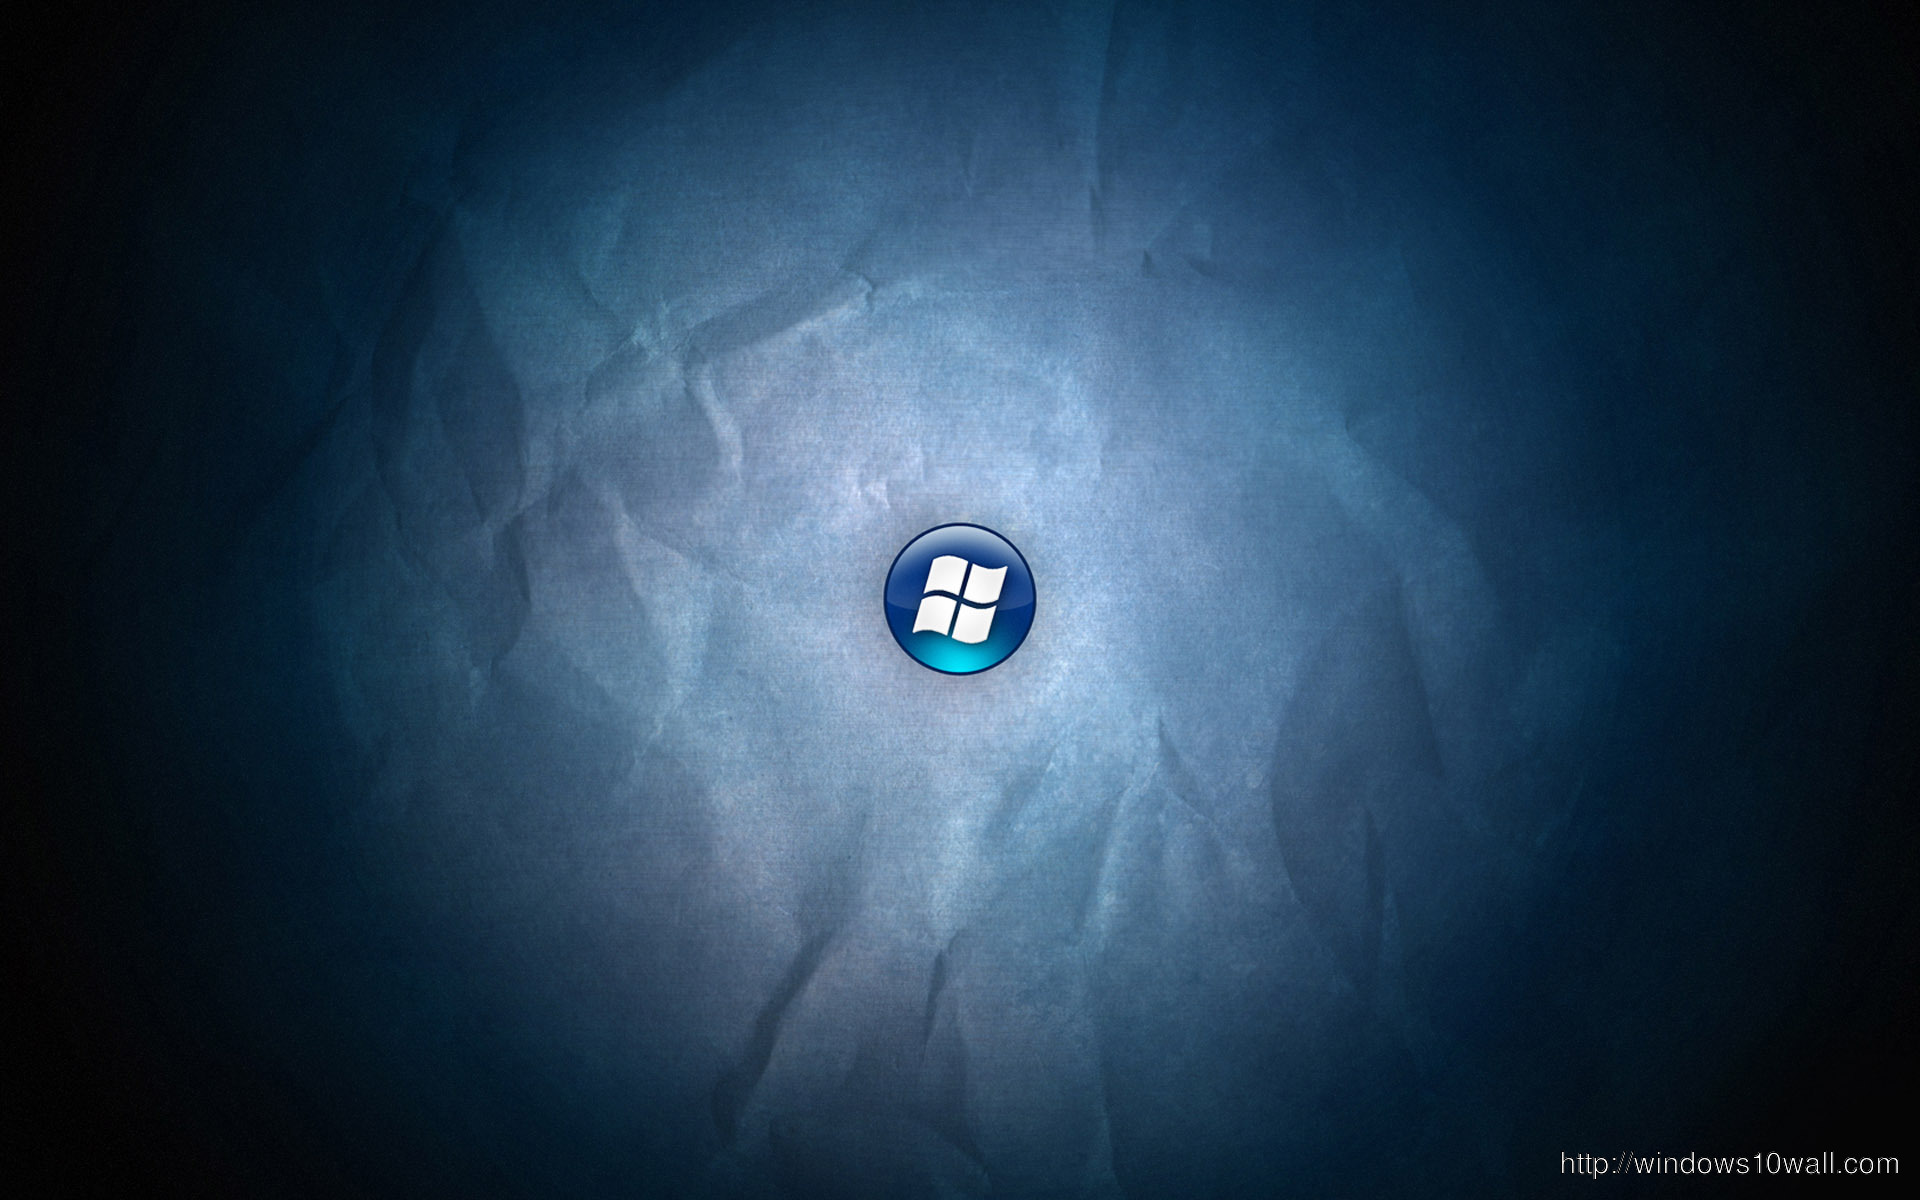 Windows Wallpaper For Pc